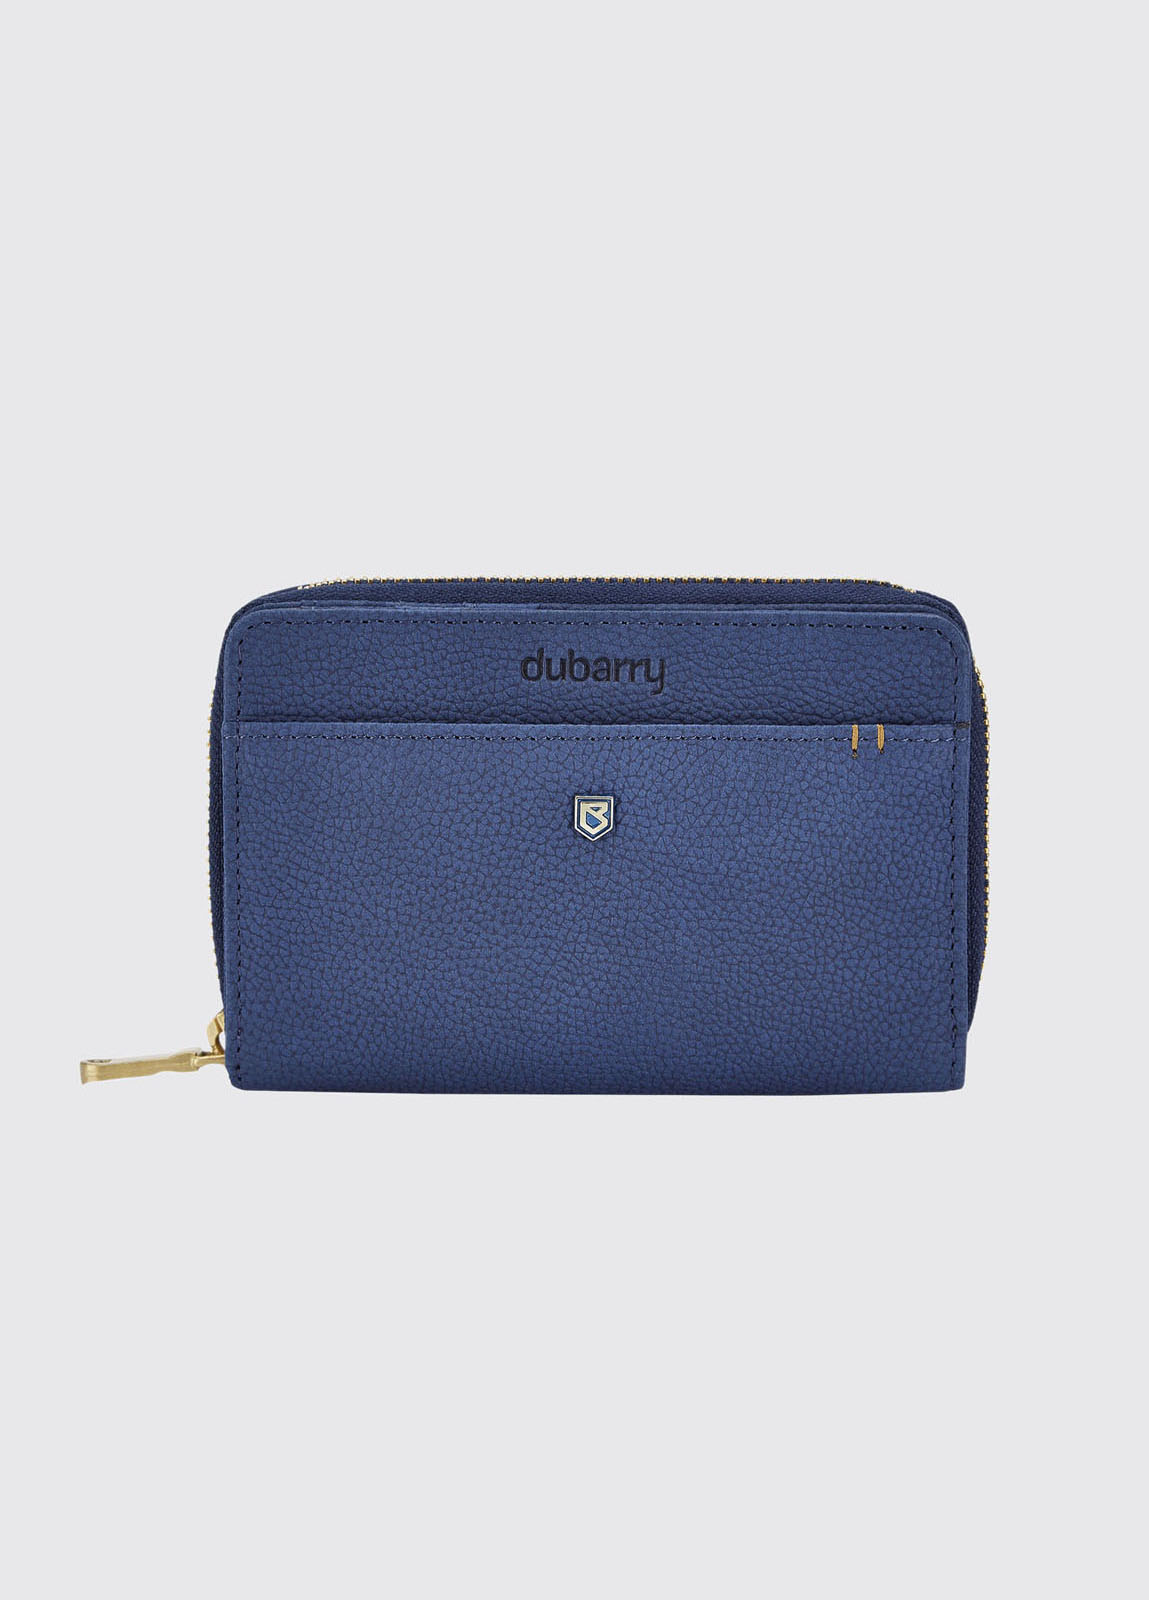 Portrush Leather Wallet - Royal Blue